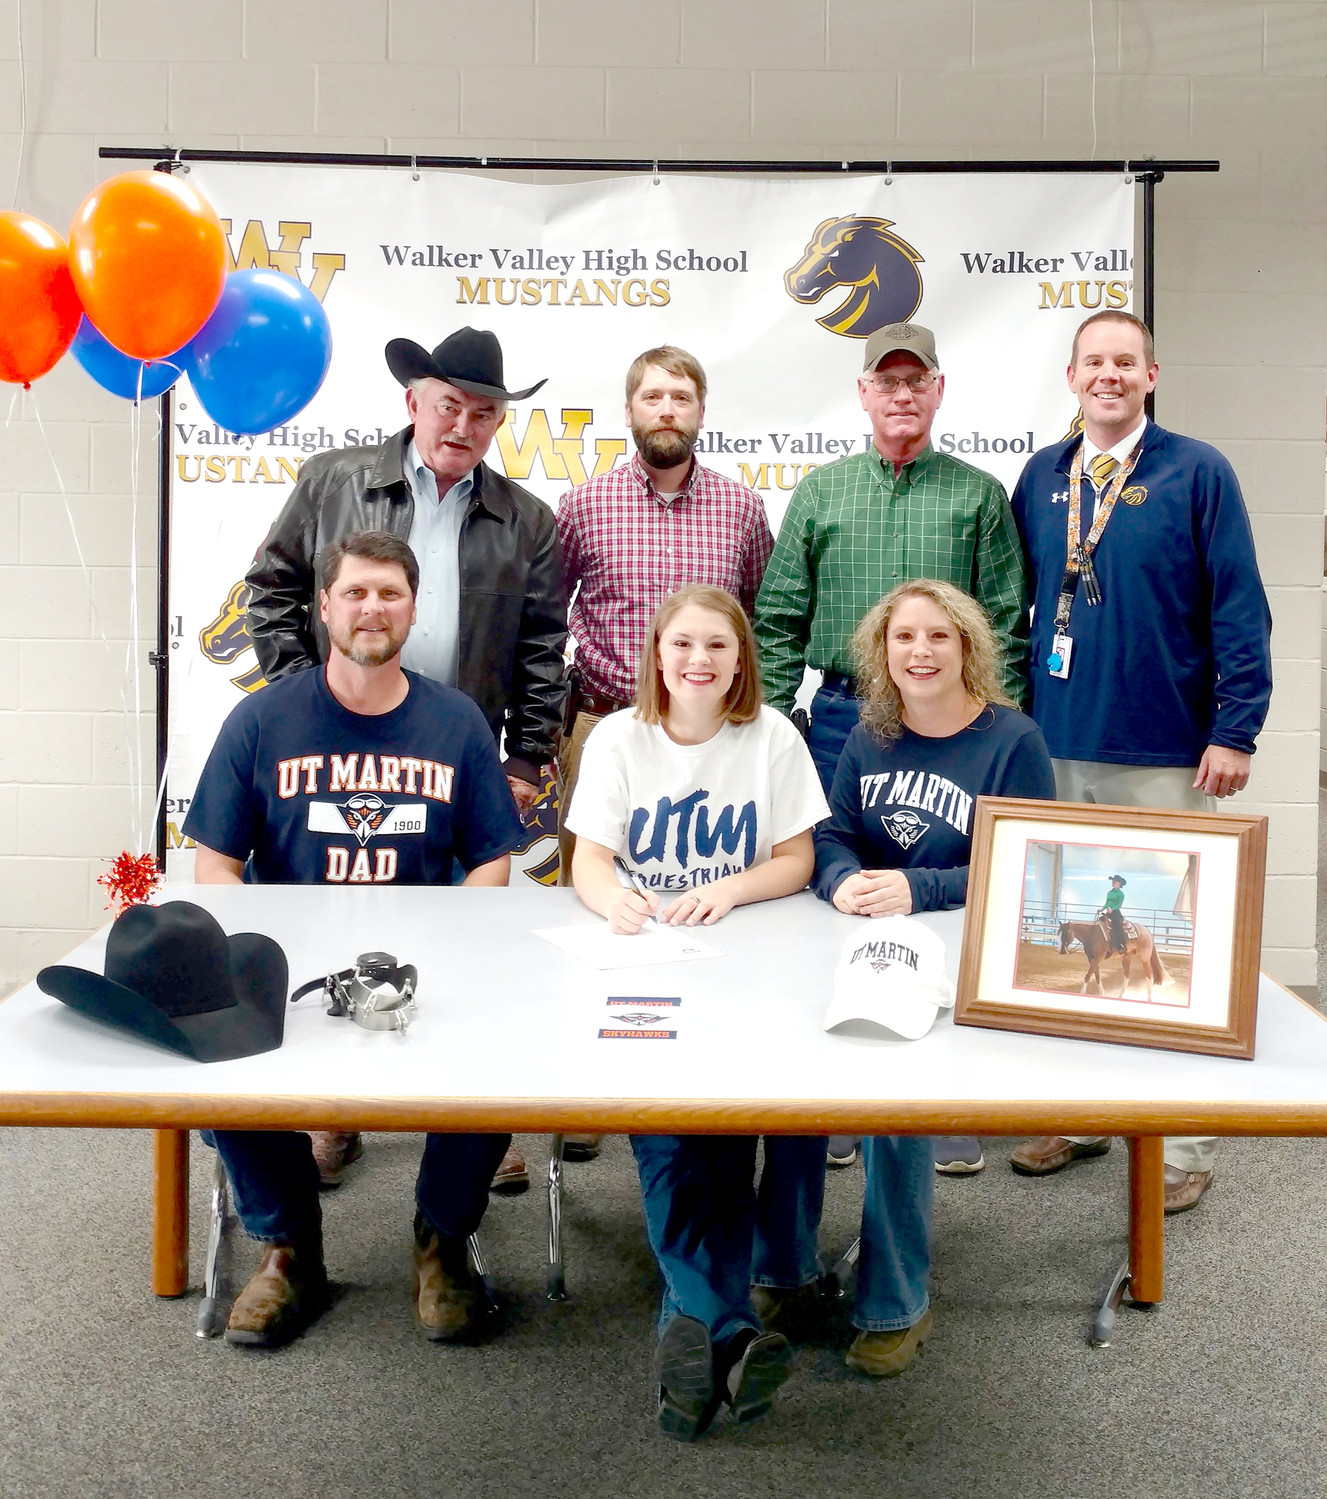 WALKER VALLEY SENIOR Kyra Petty  signed an equestrian scholarship with the University of Tennessee at Martin. Seated, from left, are Brian Petty, father; Kyra Petty; and Sarah Petty, mother. Standing are Roger Elder, IEA coach; Jason Kincaid, WVHS; Tom Green, trainer and coach; and Denny Collins, WVHS assistant principal.